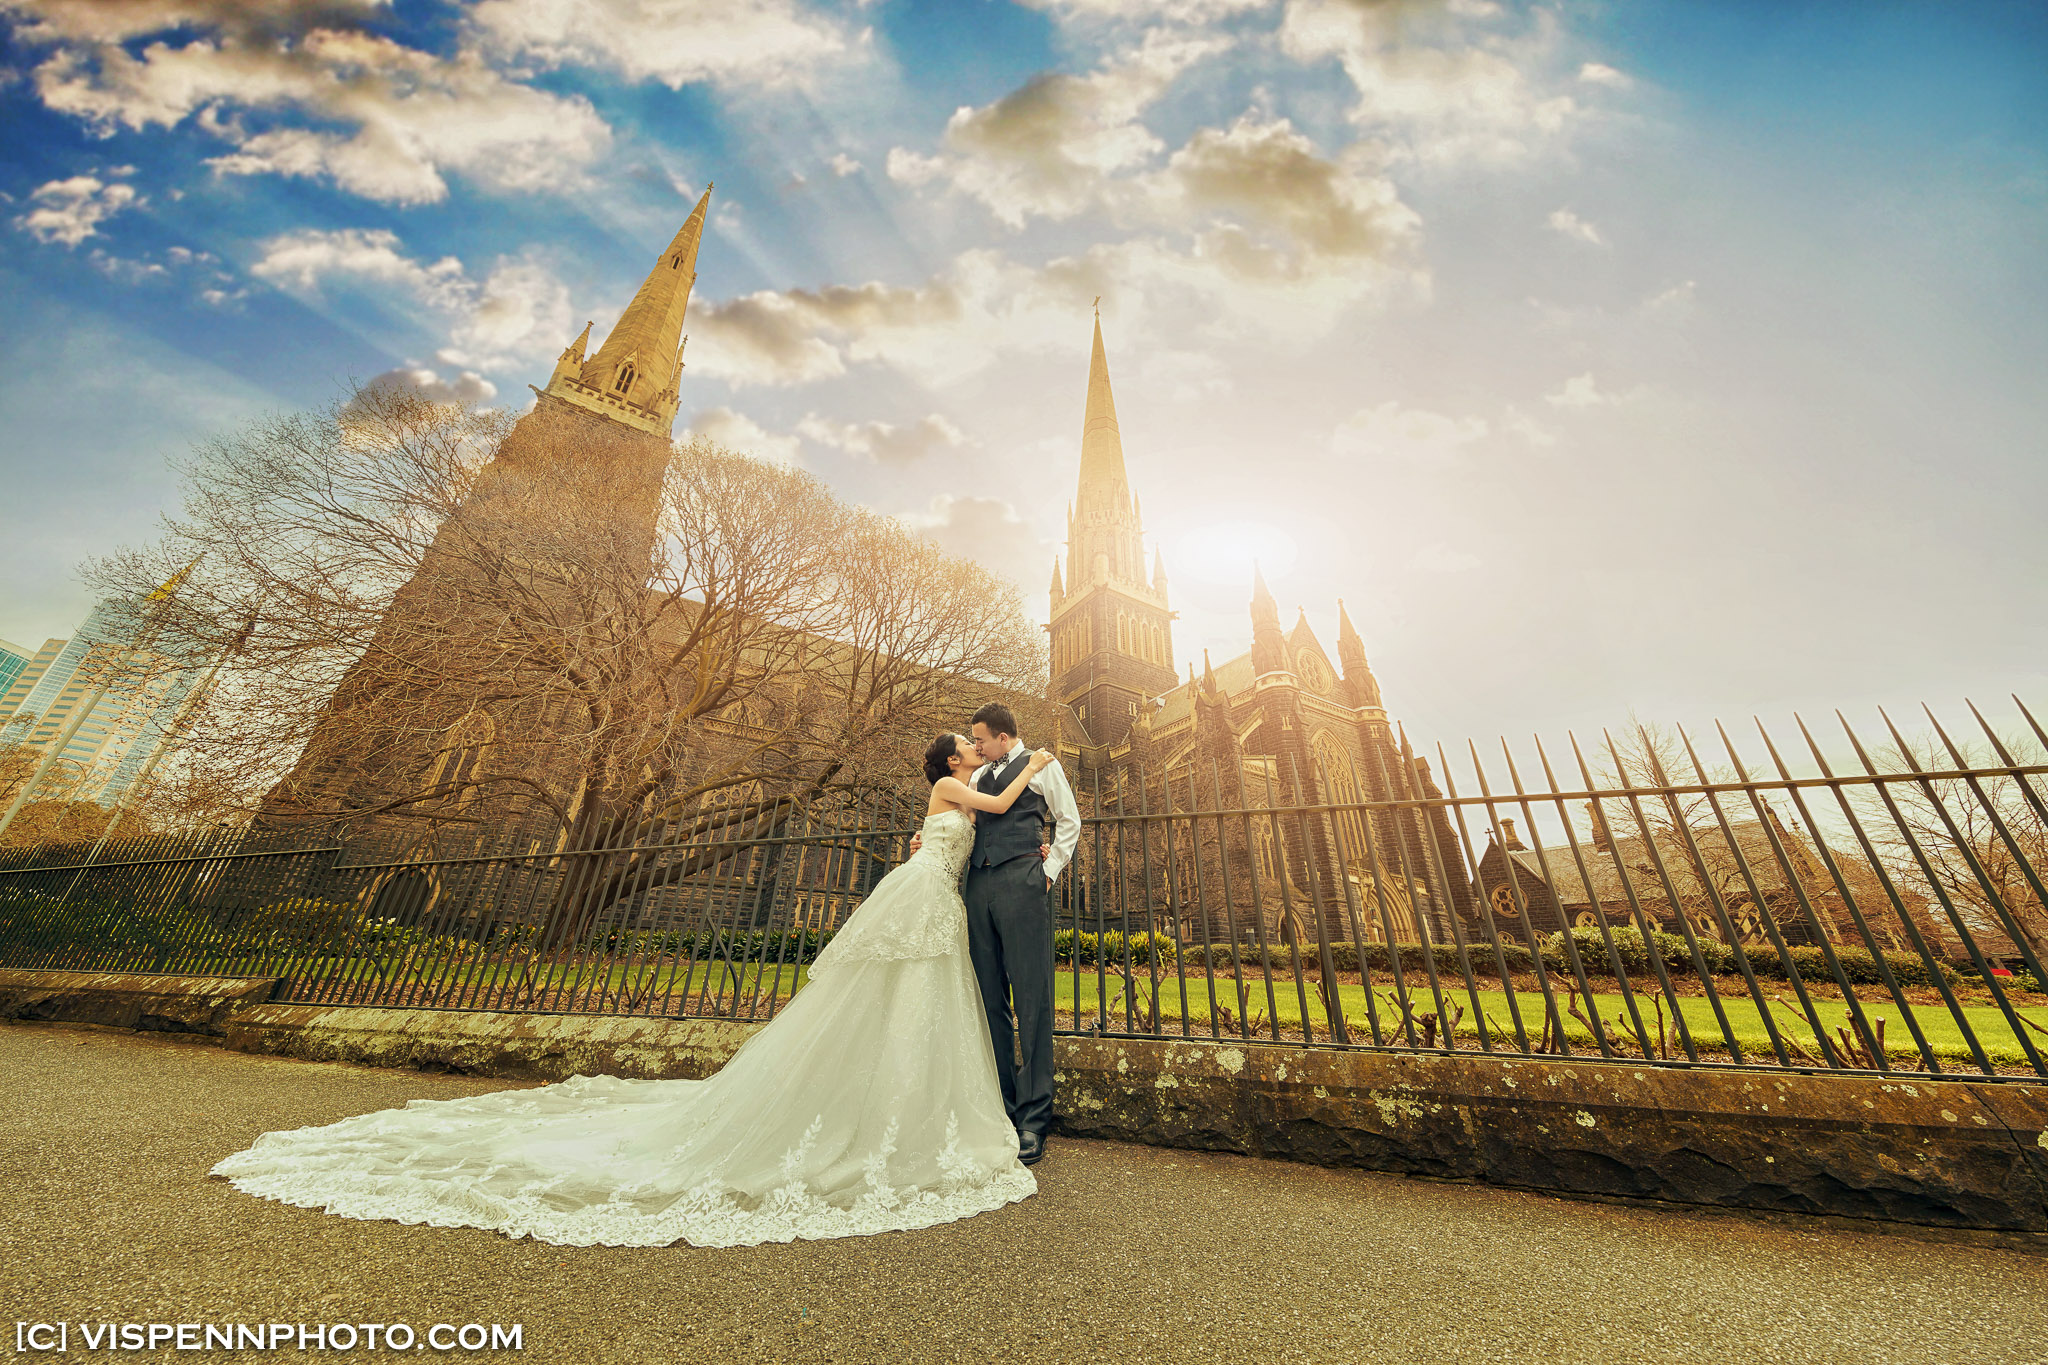 PRE WEDDING Photography Melbourne ZHPENN XXD 2174 1